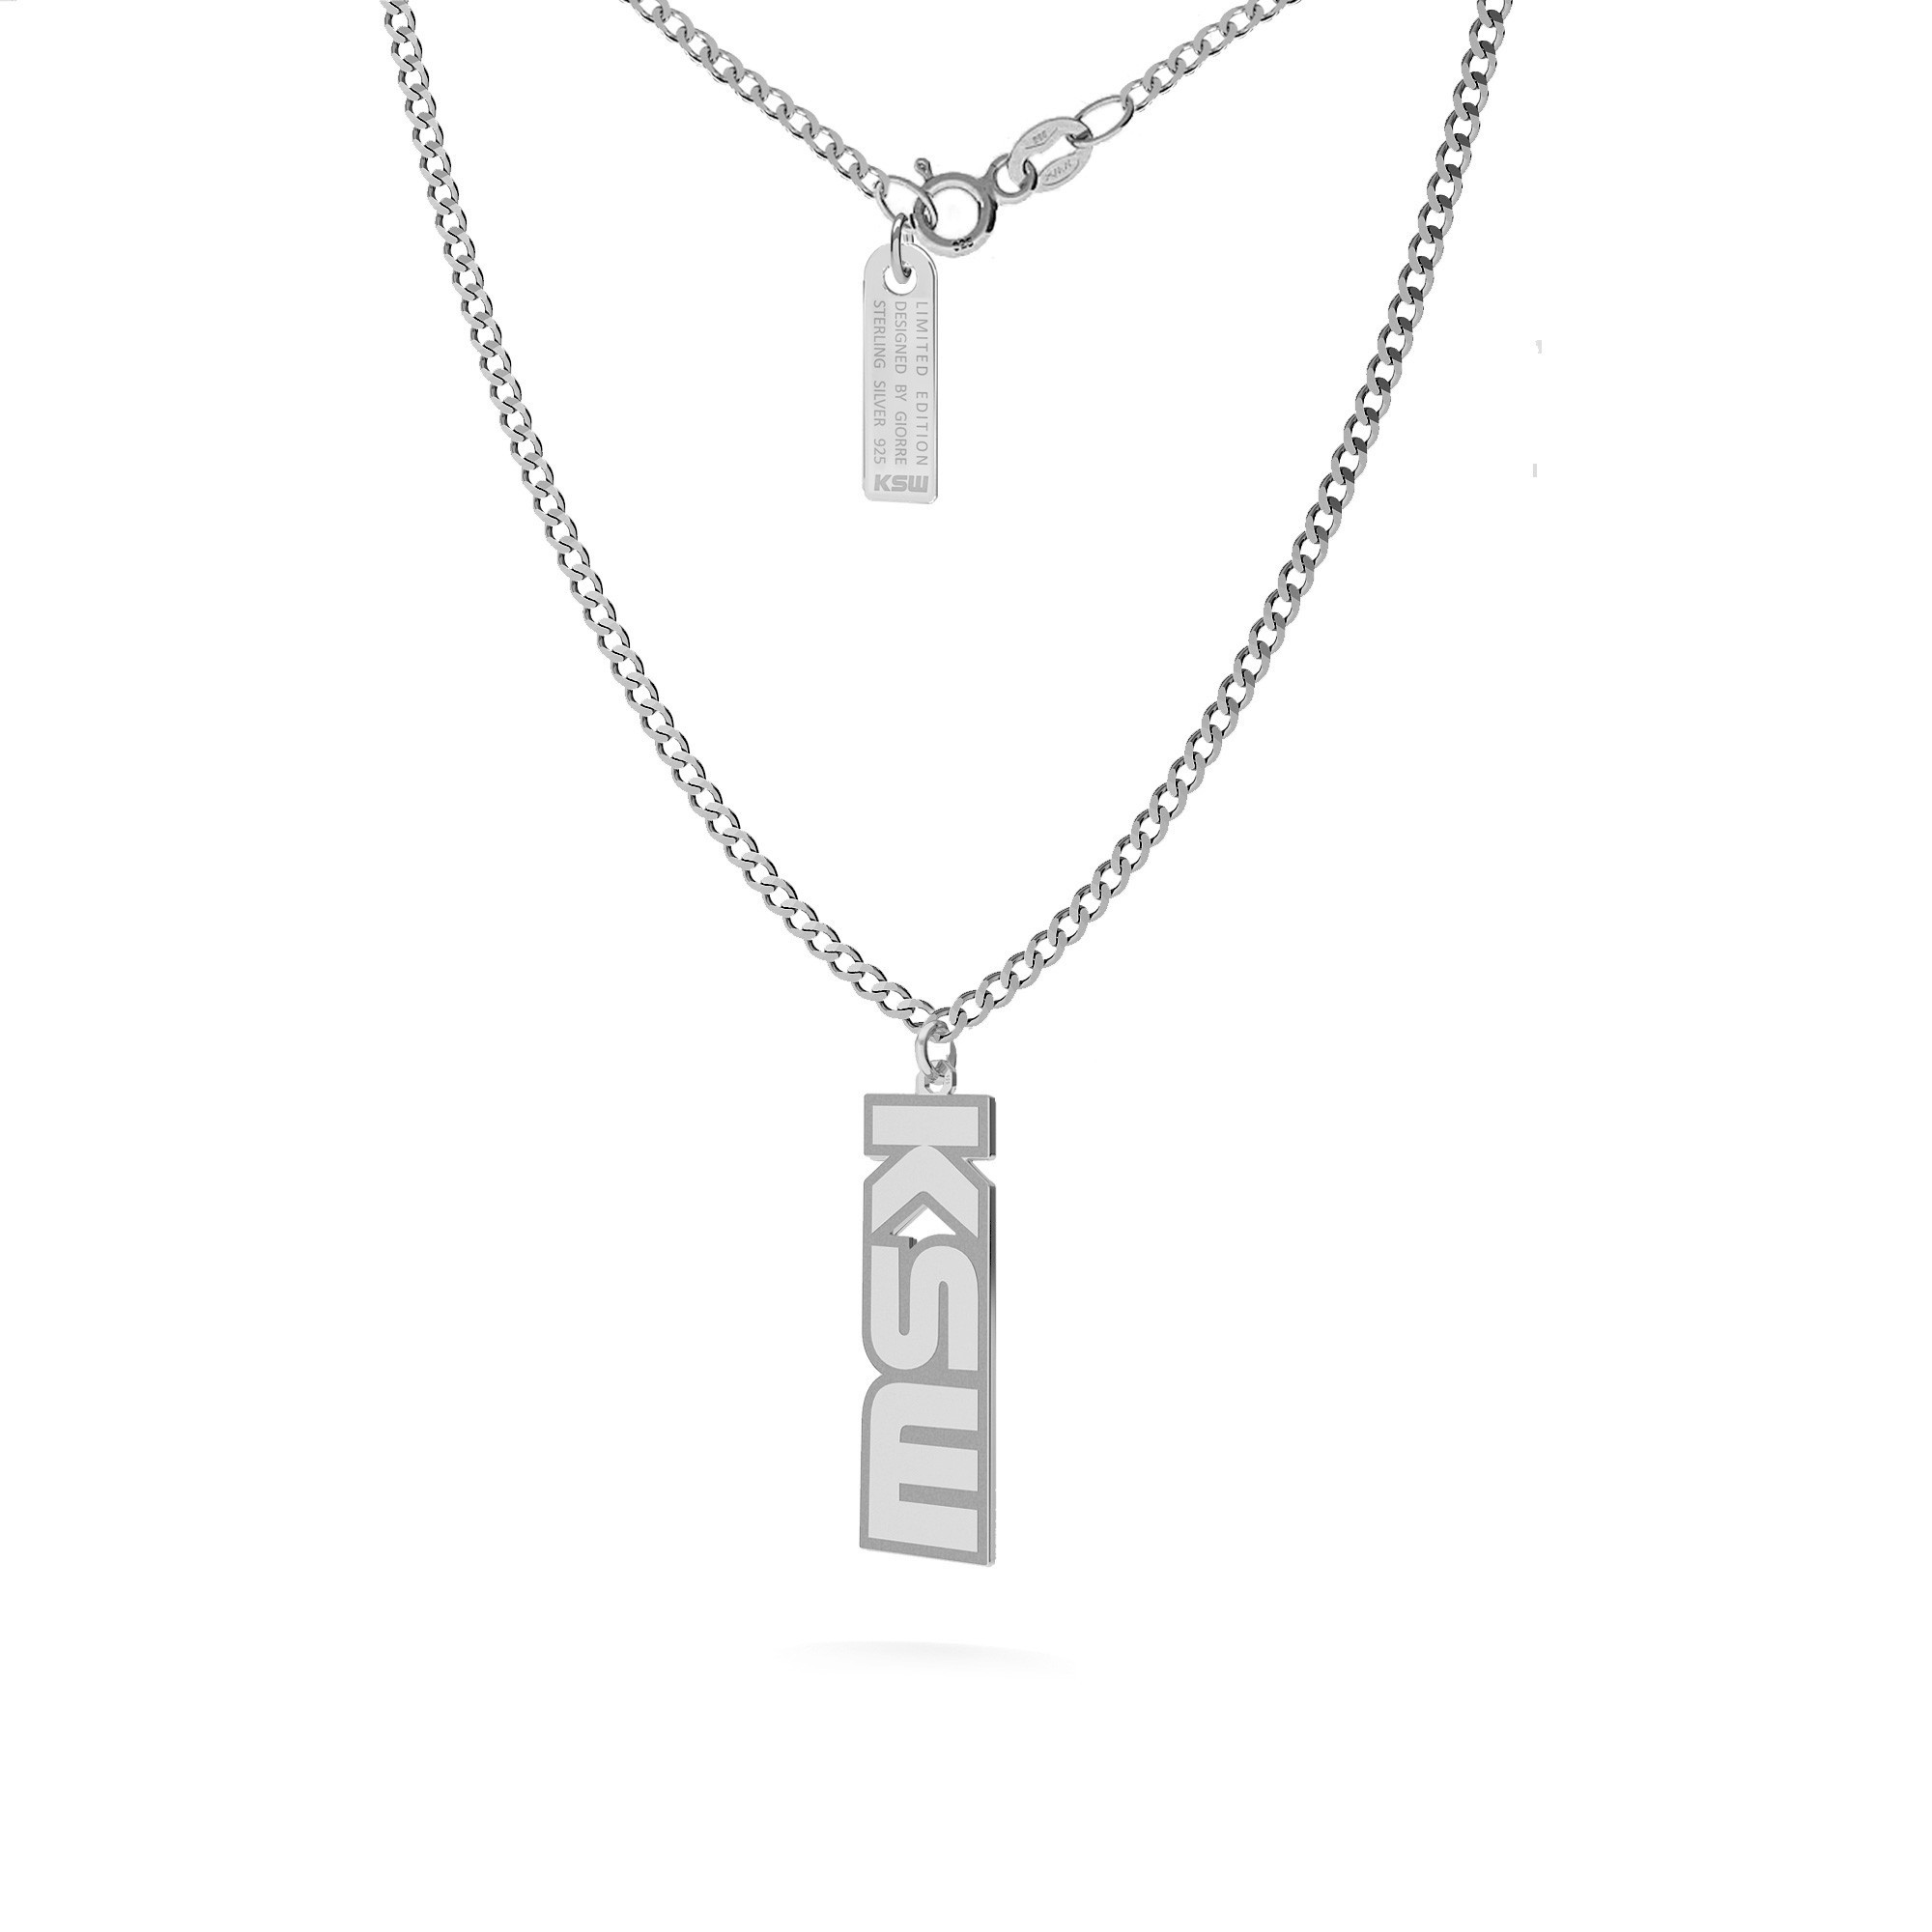 Curb chain necklace with KSW pendant, silver 925